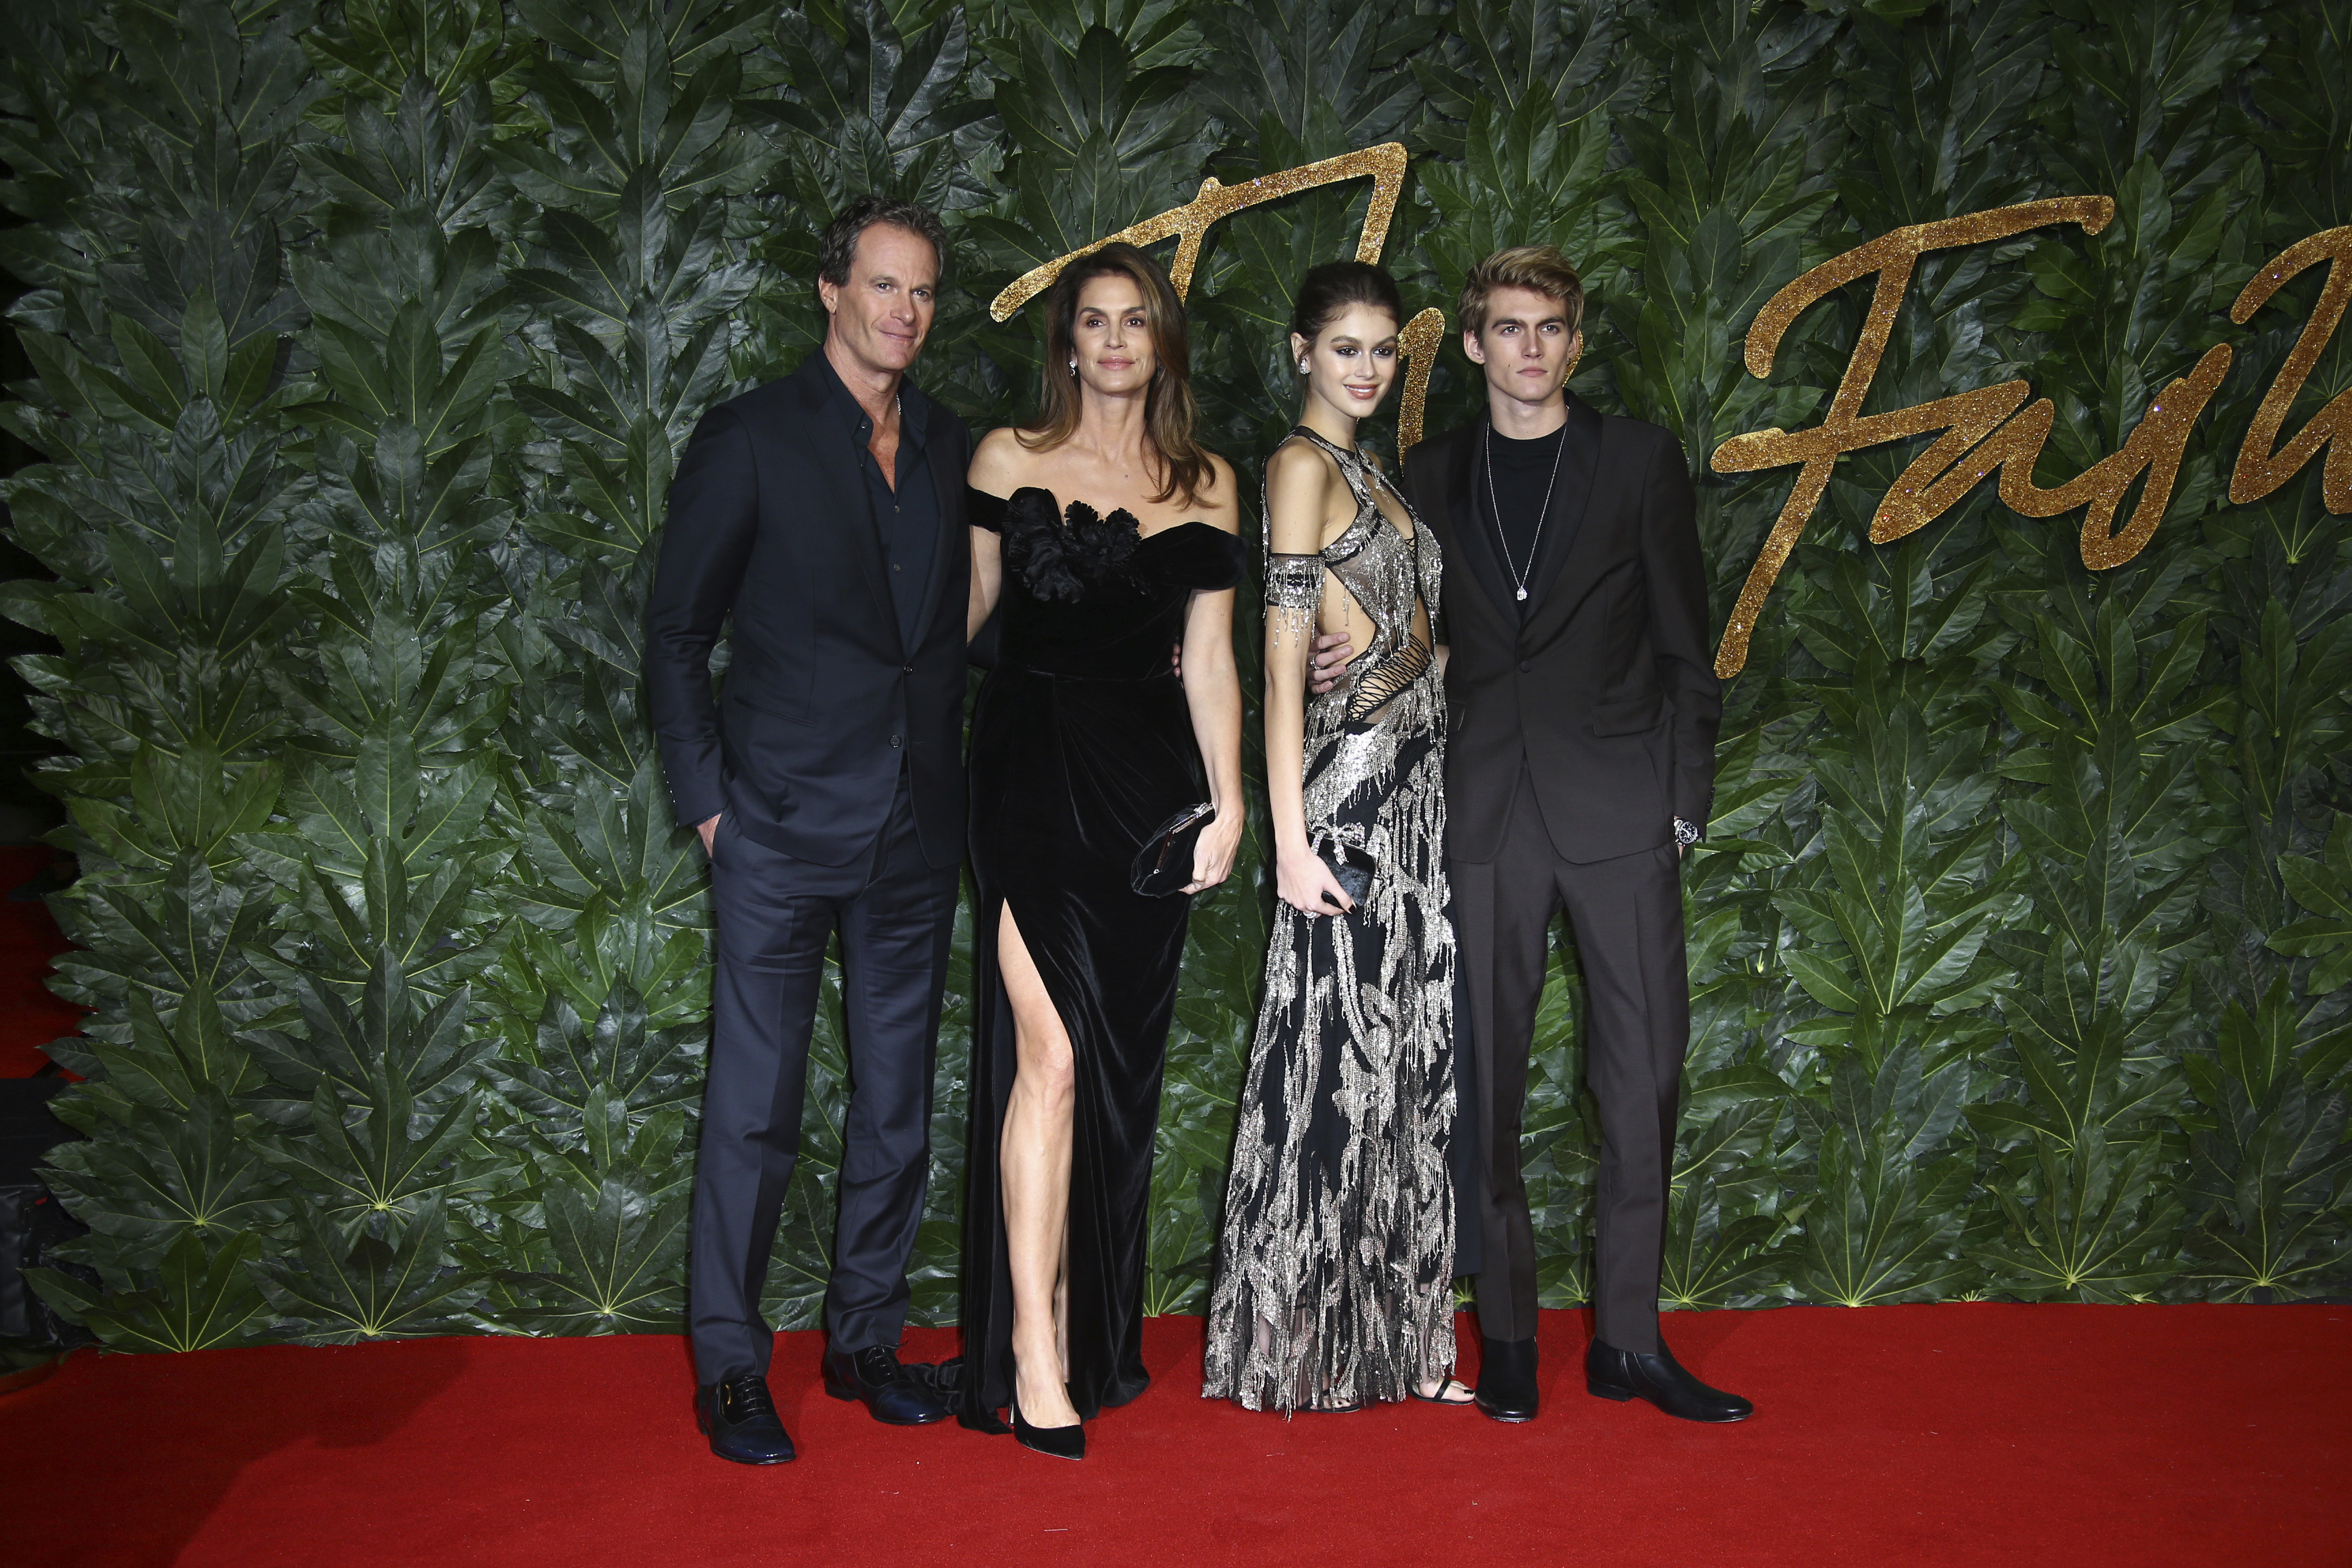 Businessman Rande Gerber, from left, models Cindy Crawford, Kaia Gerber and Presley Walker Gerber pose for photographers upon arrival at the The Fashion Awards 2018 in central London, Monday, Dec. 10, 2018. (Photo by Joel C Ryan/Invision/AP)